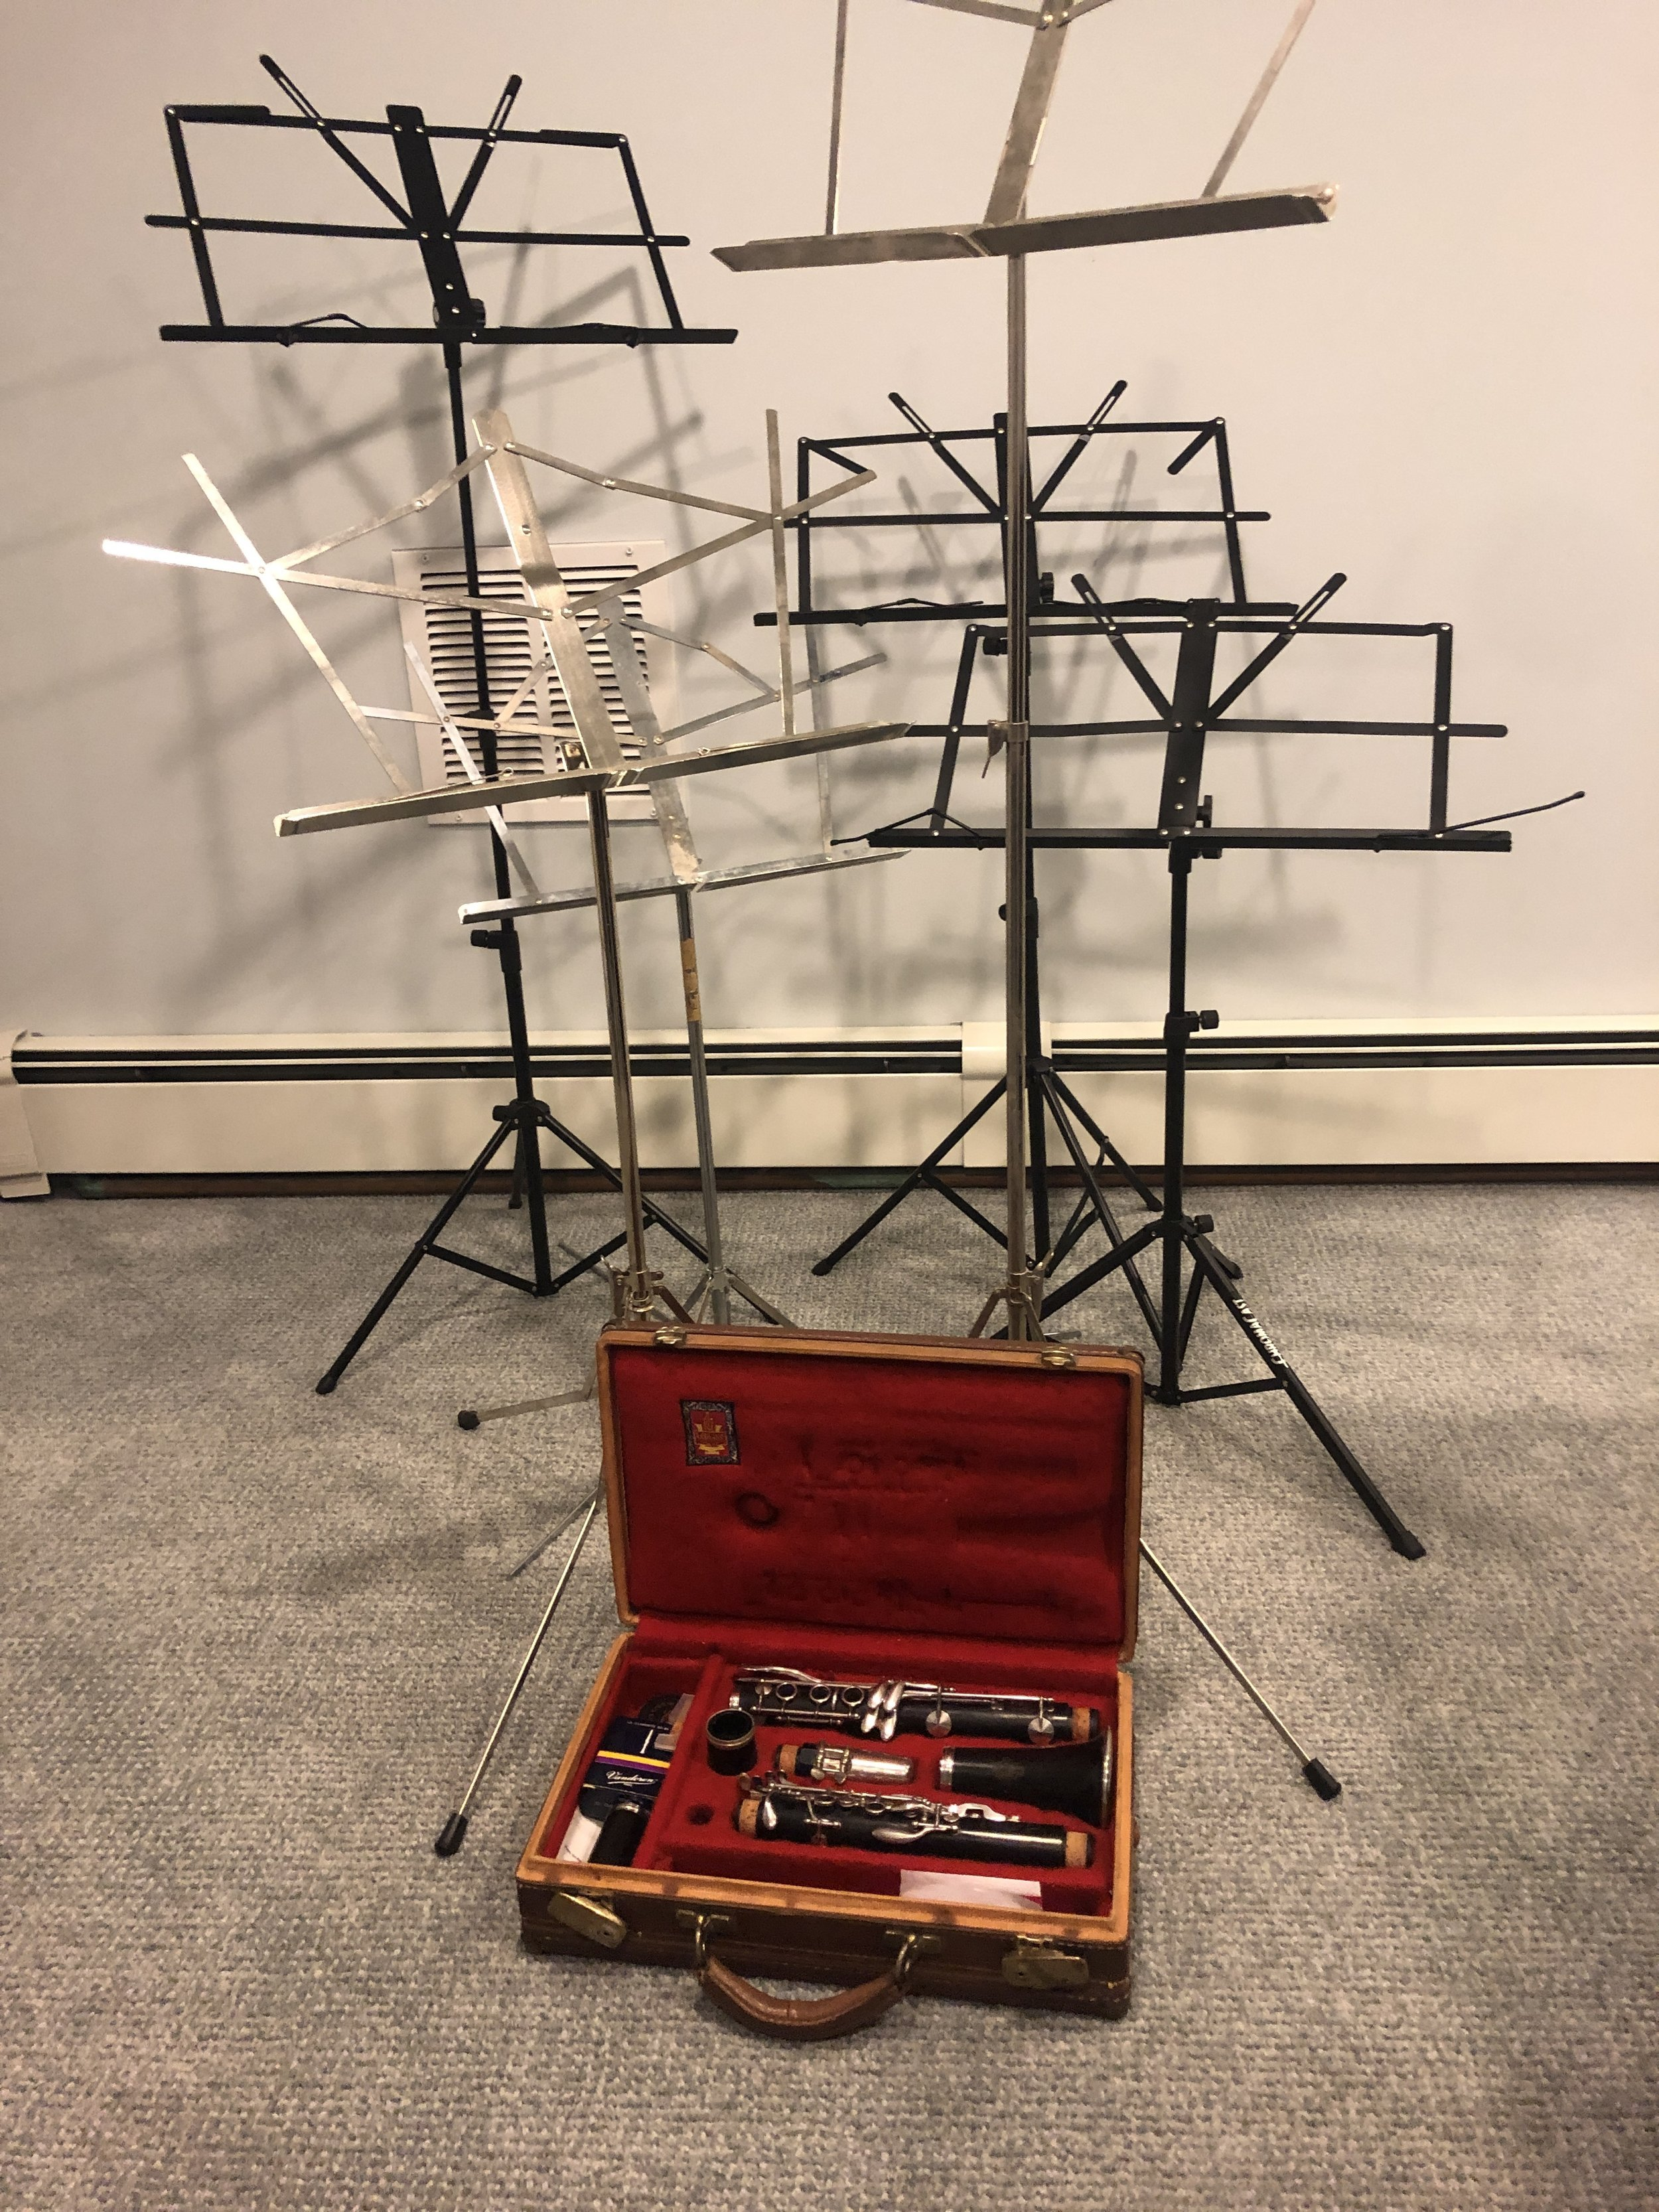 … all of these music stands! -